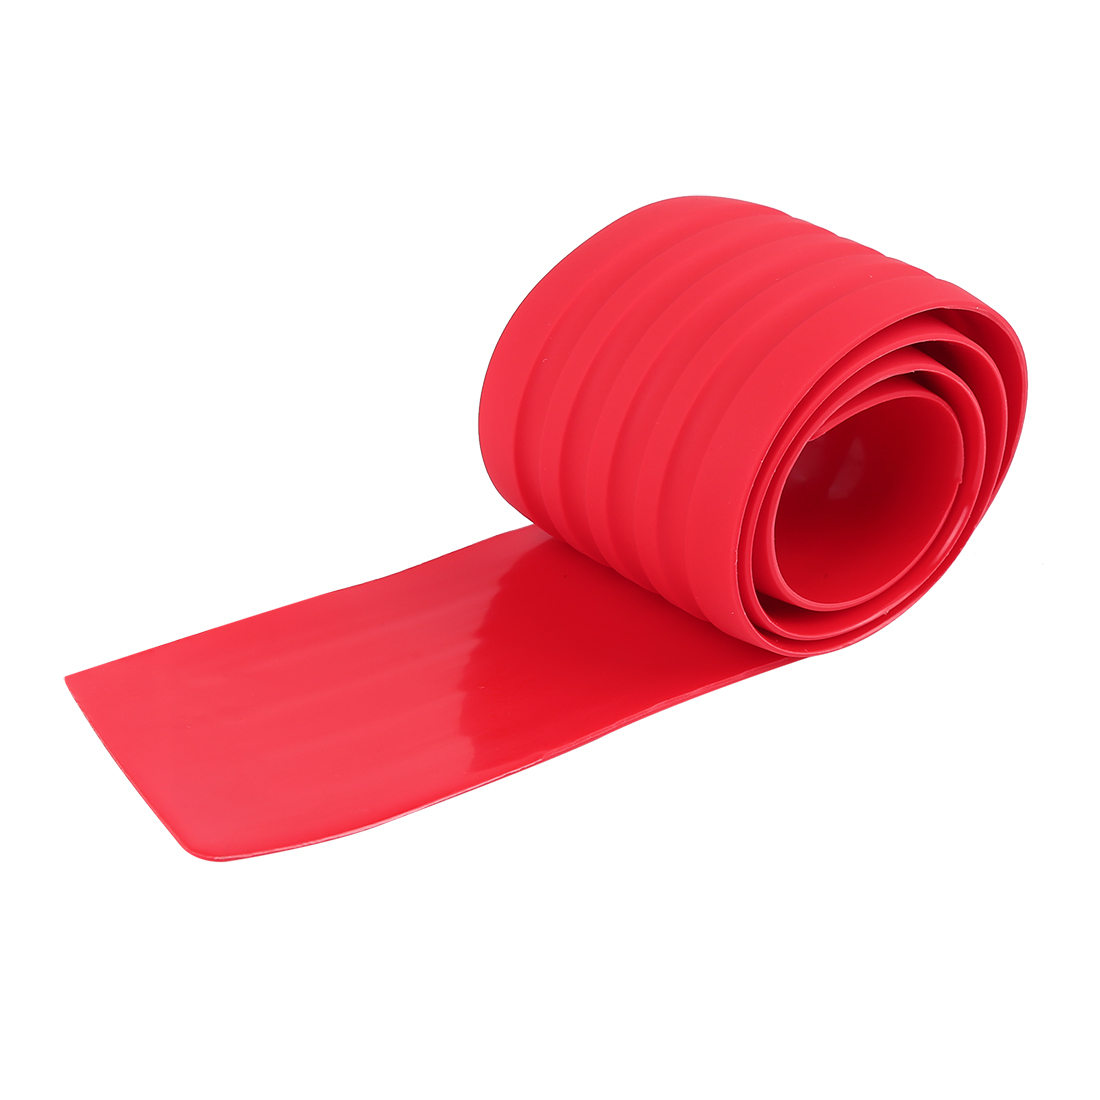 Car Rear Bumper Protector Rubber Cover Guard Trim Protective Strip 90 x 8cm Red